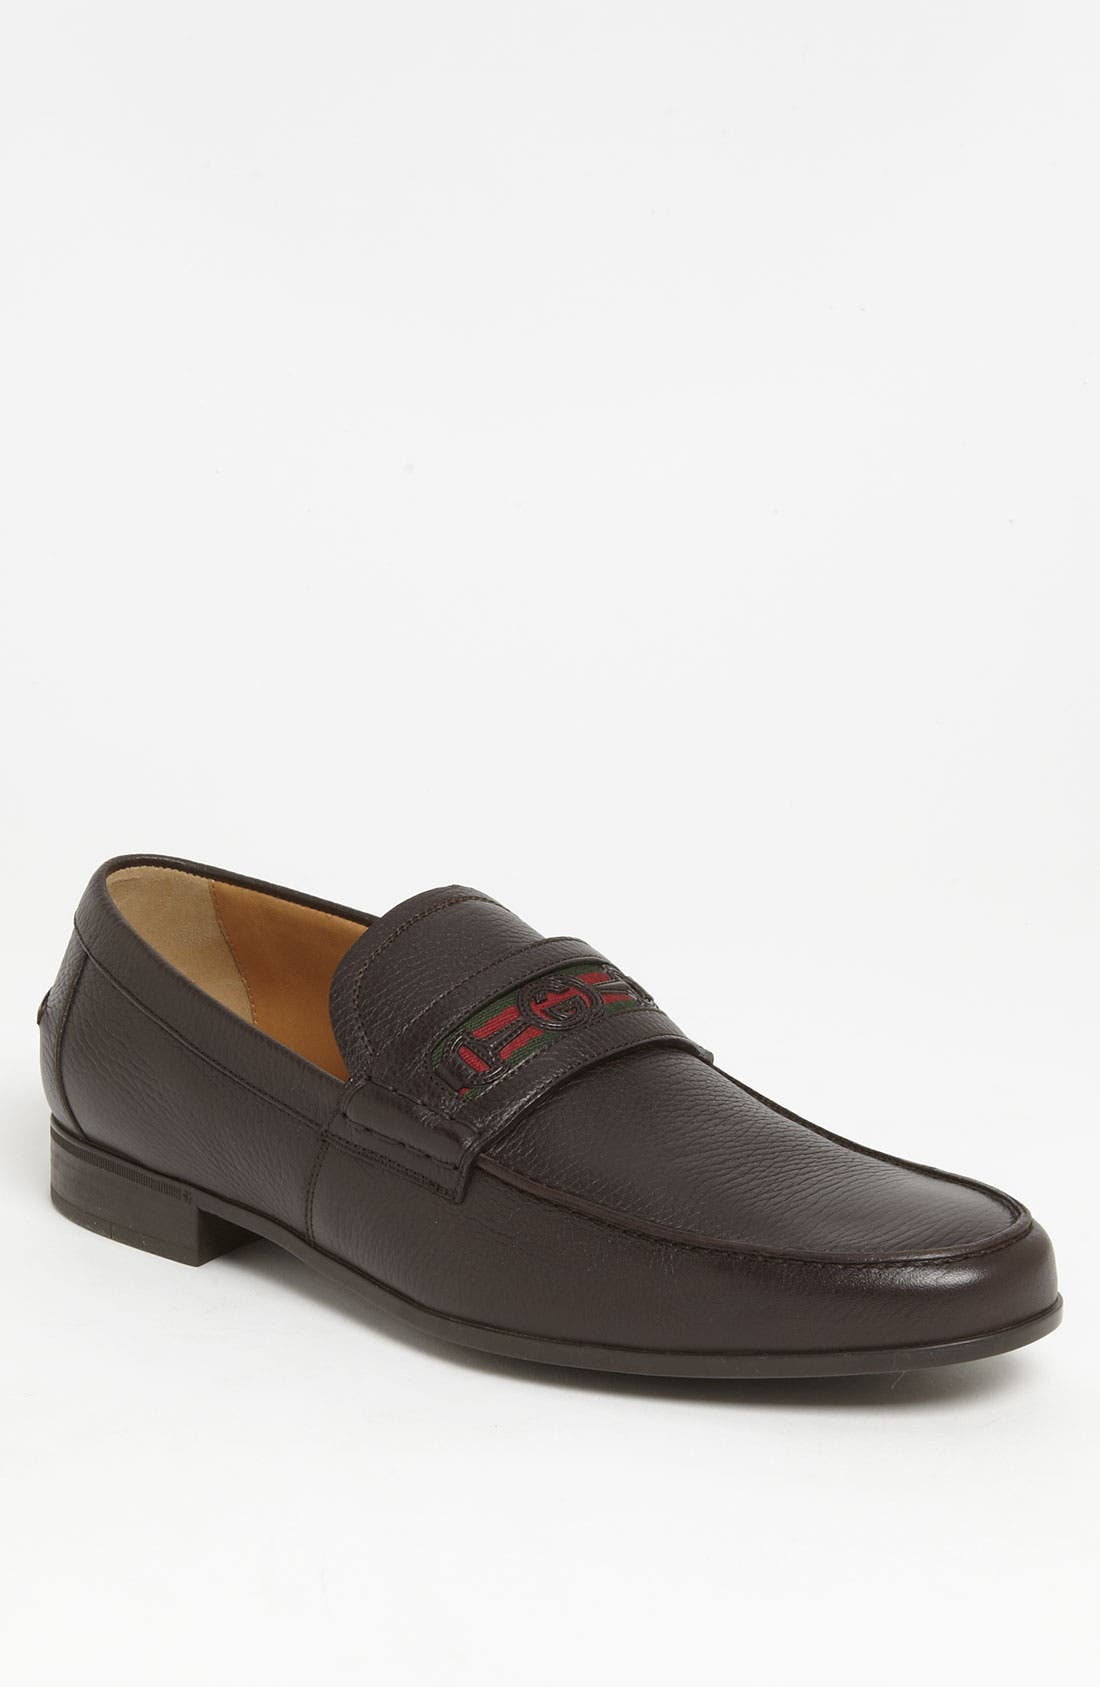 Main Image - Gucci 'Goudin' Loafer